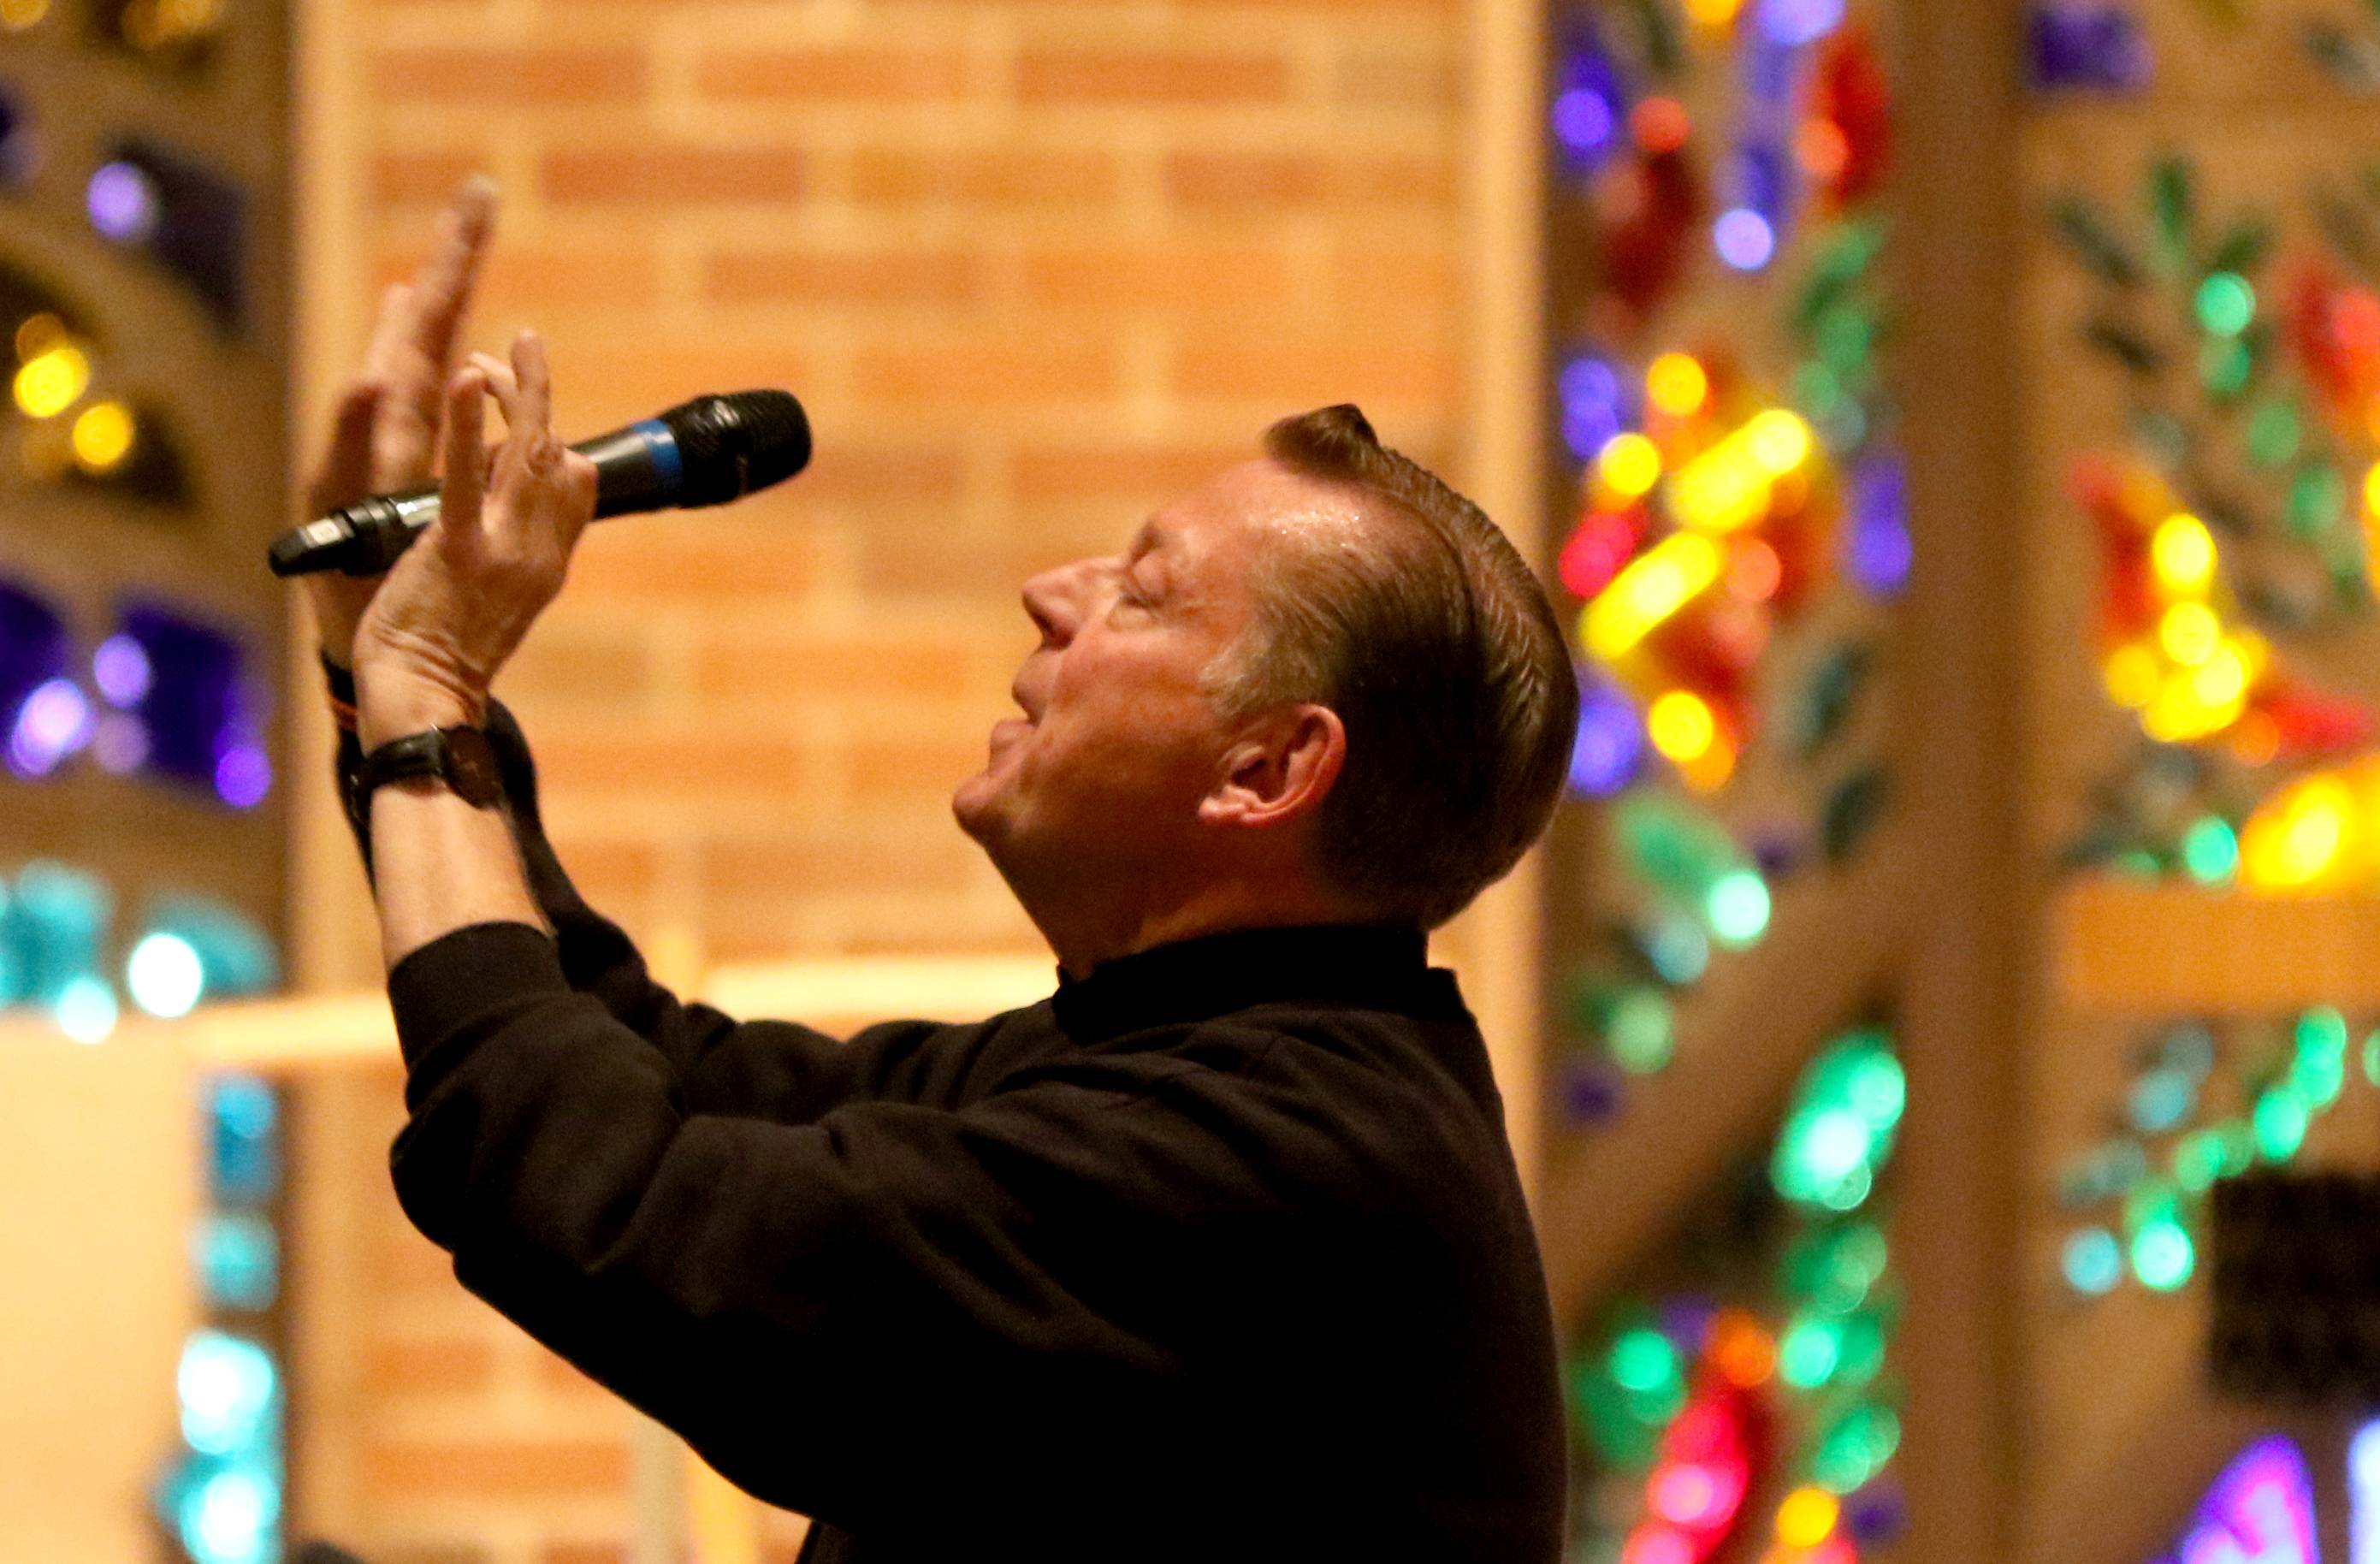 "The Rev. Michael Pfleger said at First United Methodist Church in Arlington Heights on Thursday night that many believers and the clergy have ""spiritual laryngitis"" and are afraid to discuss politics or anything controversial."